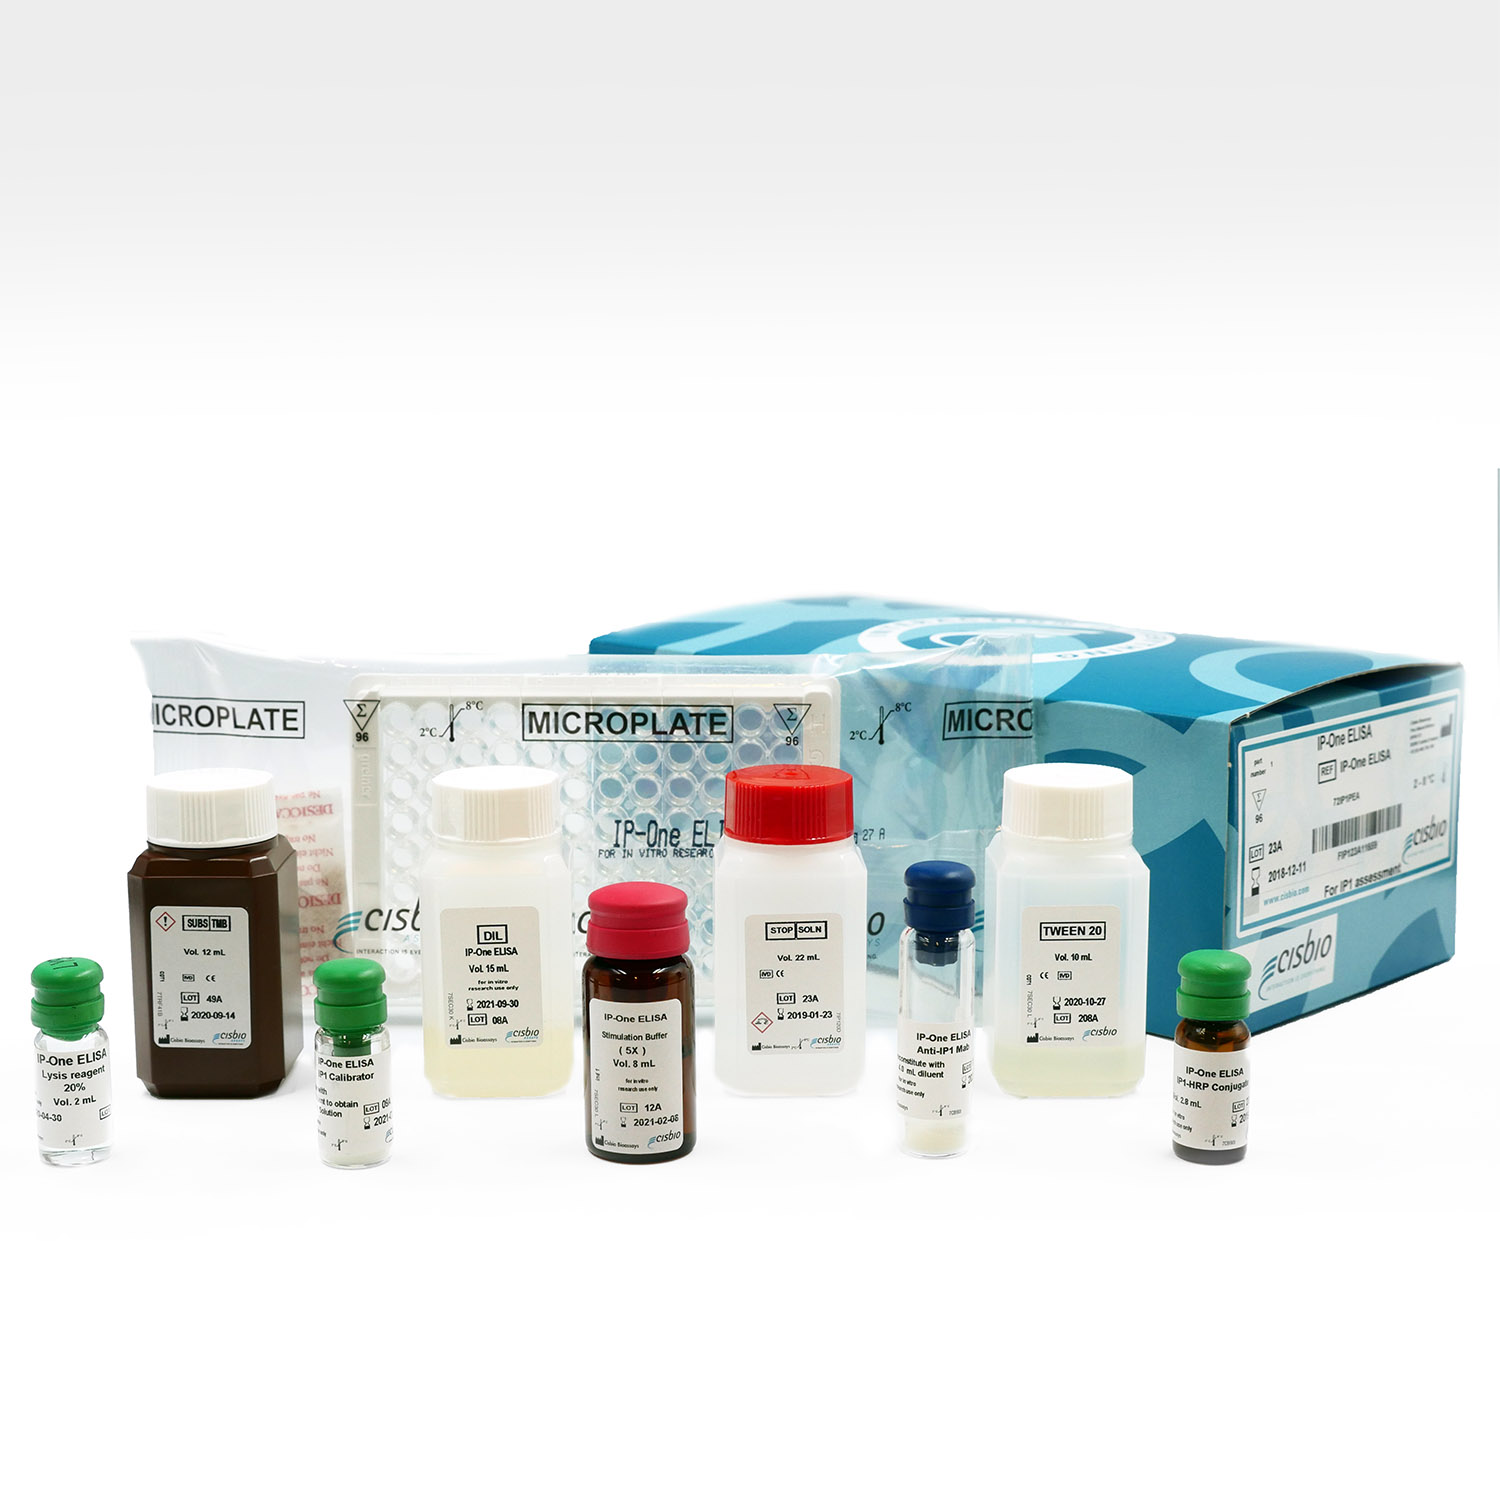 Photography of IP-One Gq ELISA kit and components